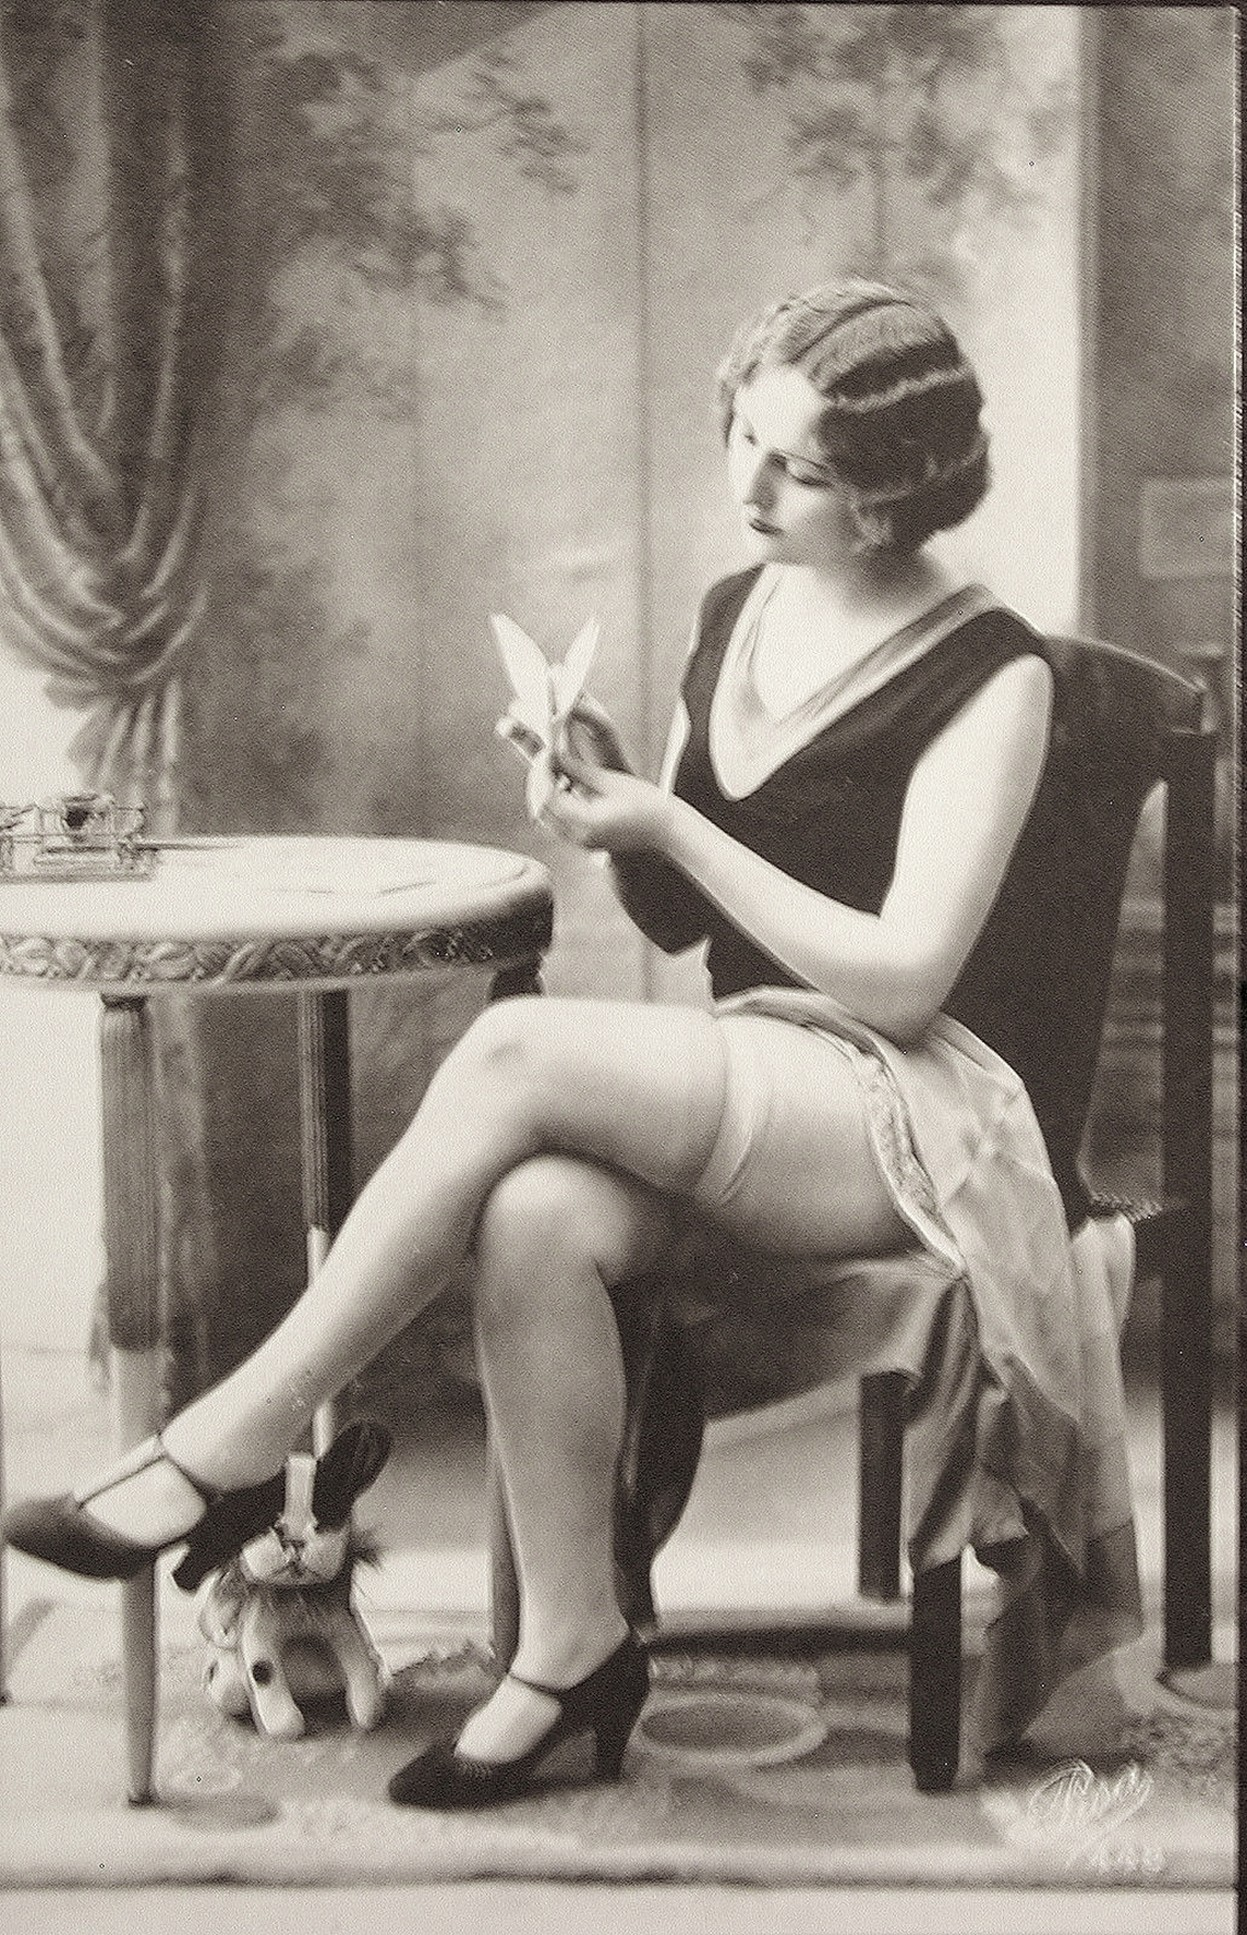 It's just a graphic of Impertinent Vintage Risque Photos